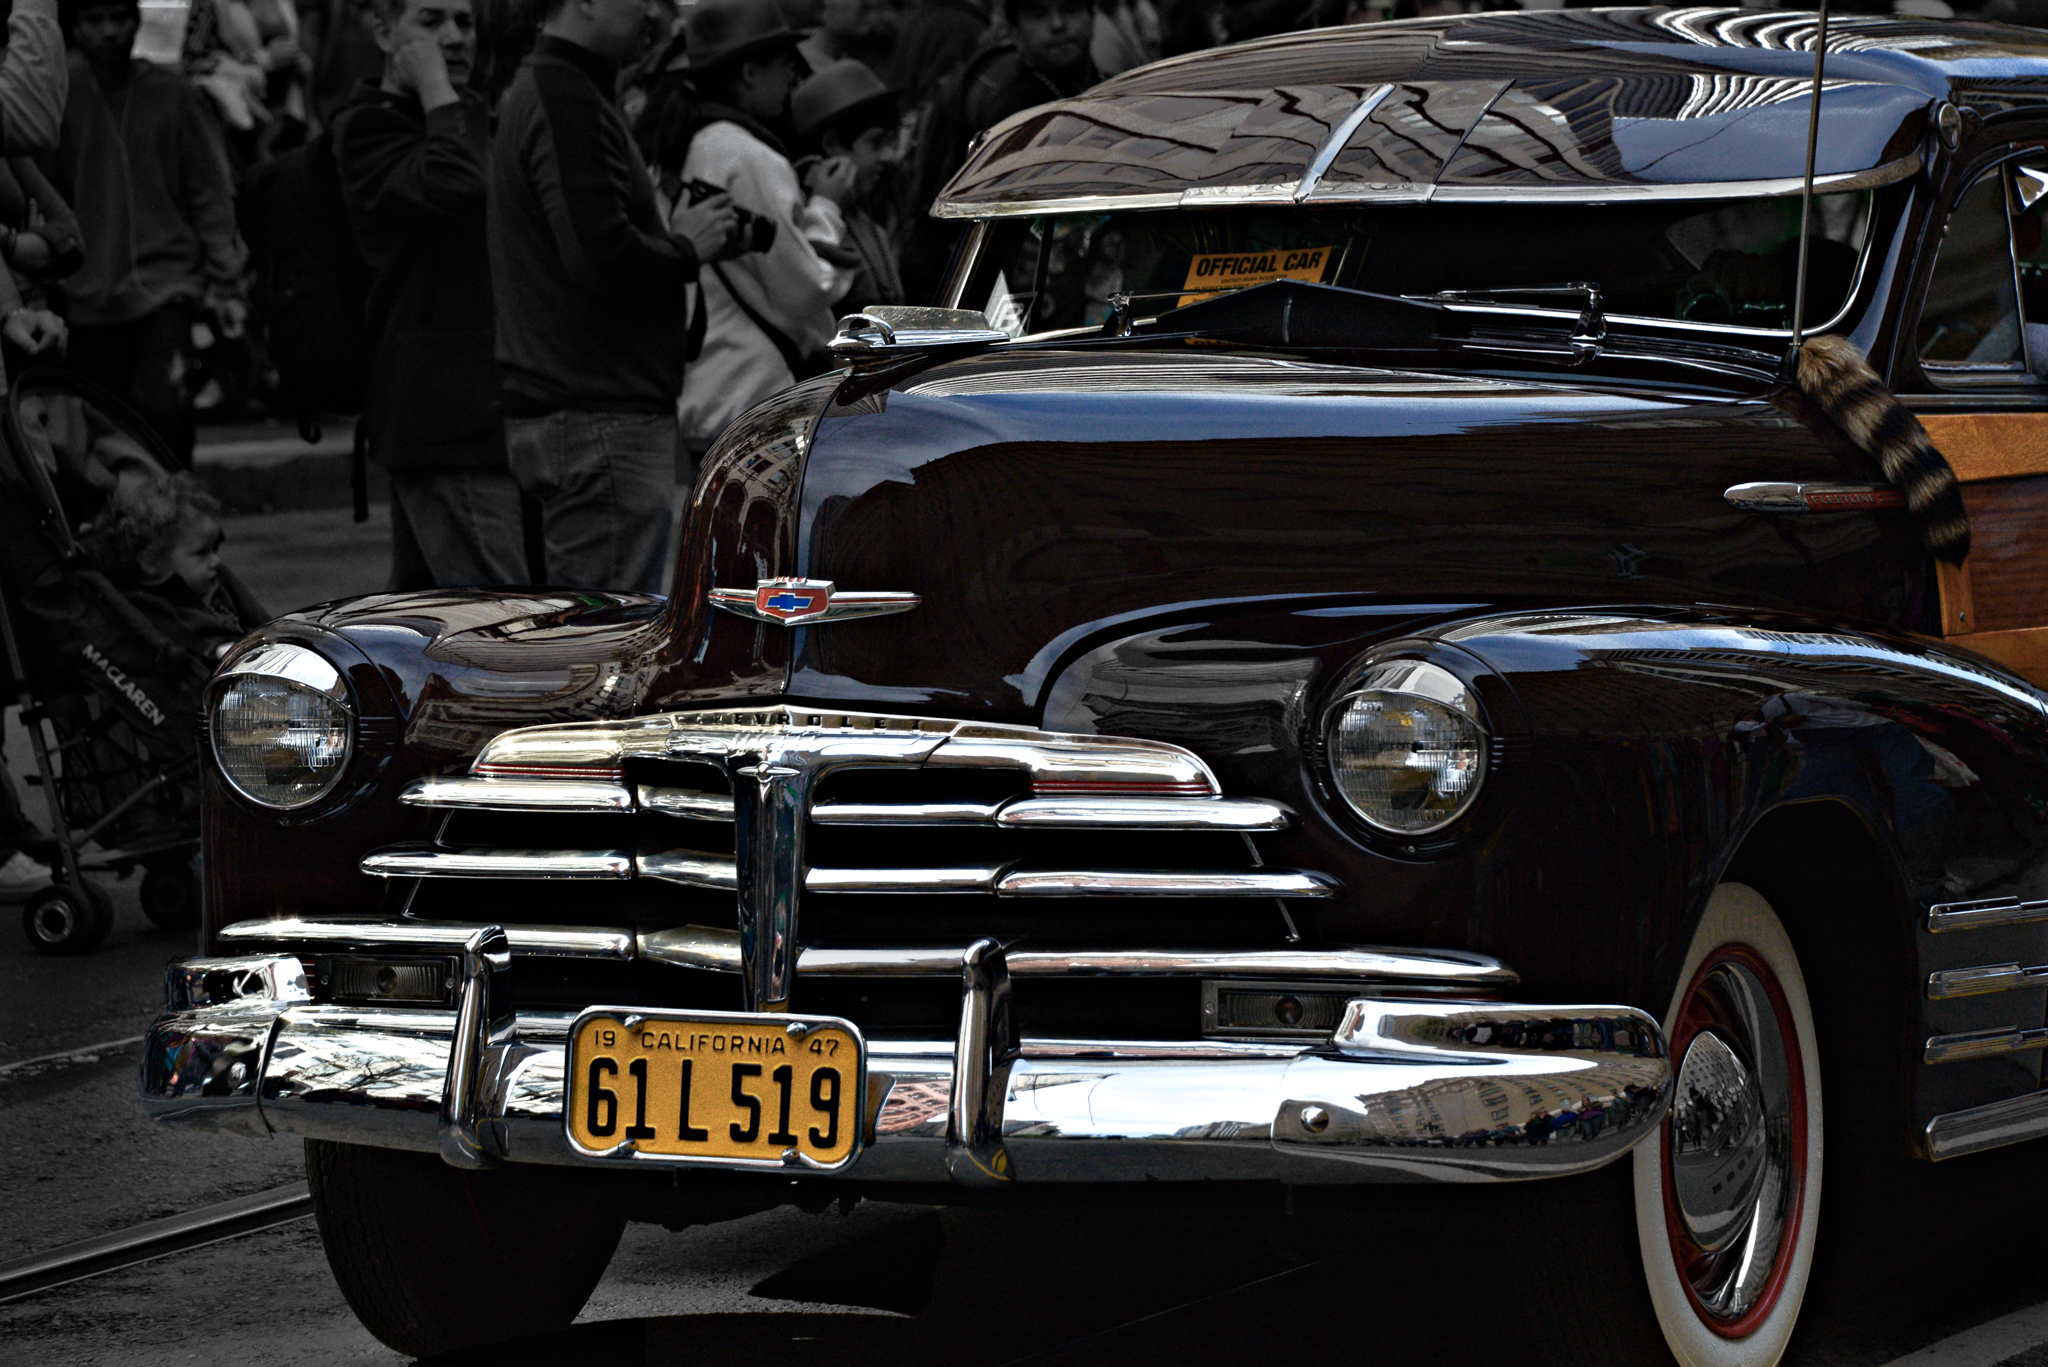 Chevrolet - San Francisco - 2013 by Scott Loftesness